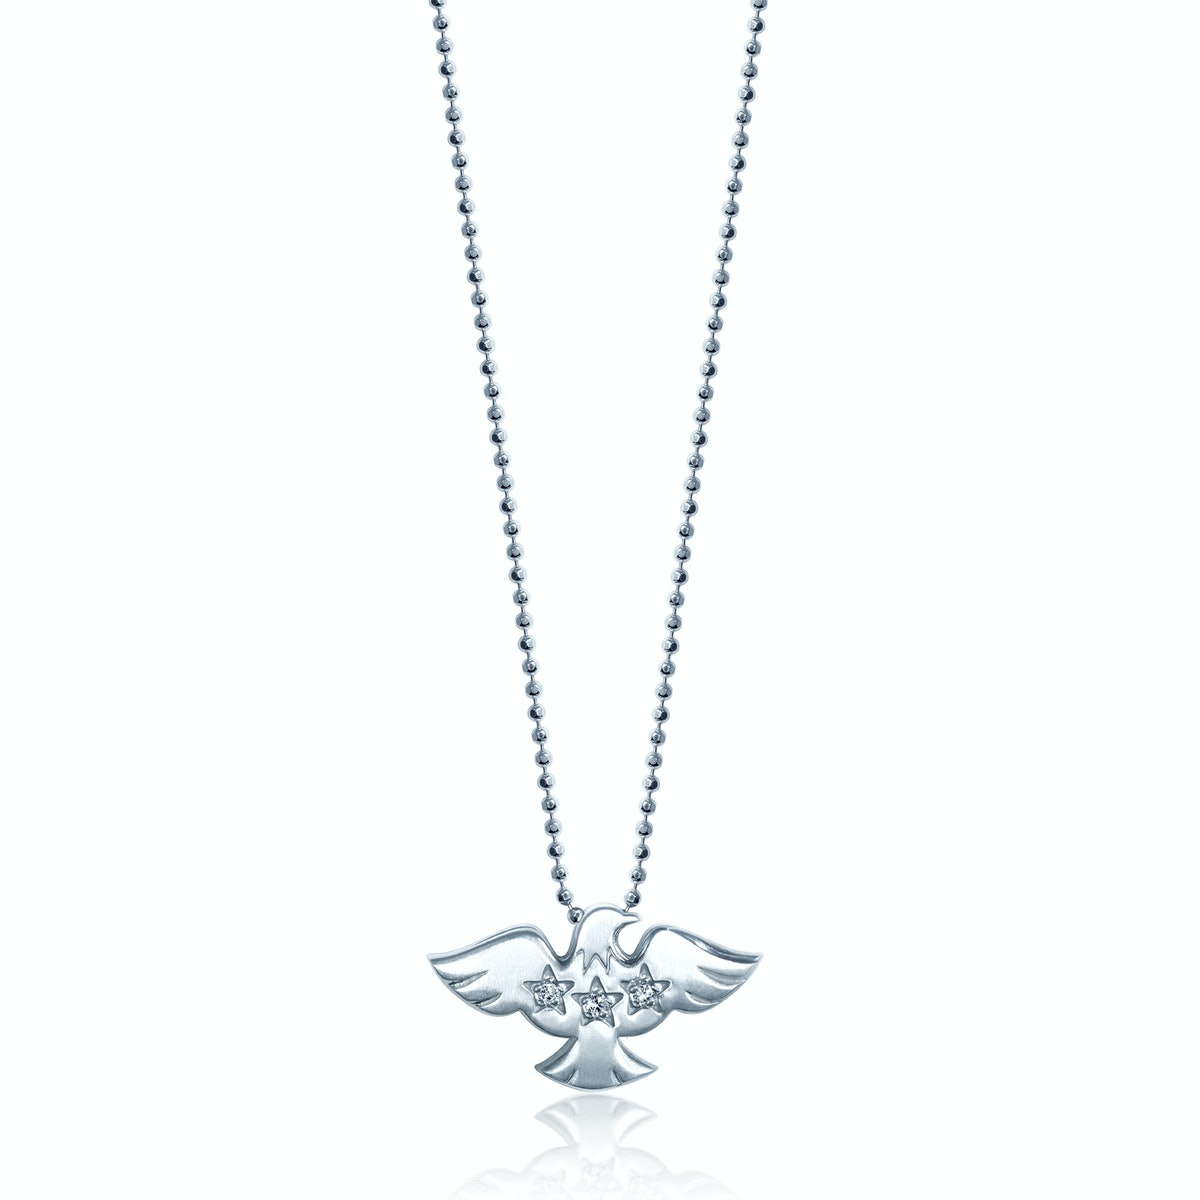 Alex Woo 14k white gold and diamond necklace